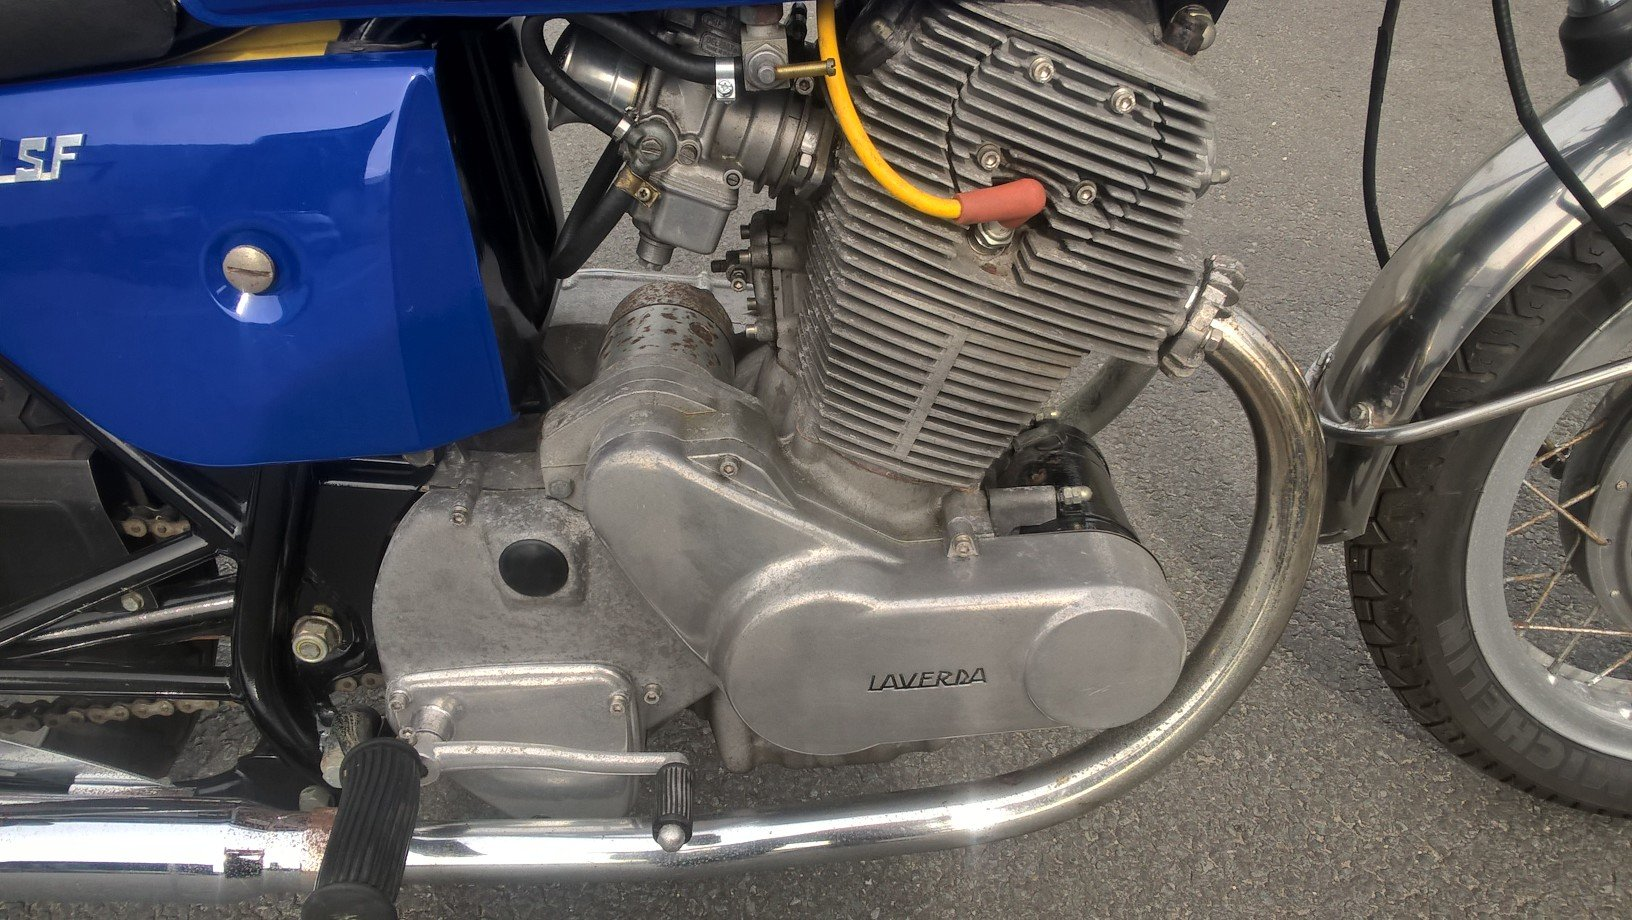 1971 Laverda 750 SF drumbrake type For Sale (picture 2 of 6)